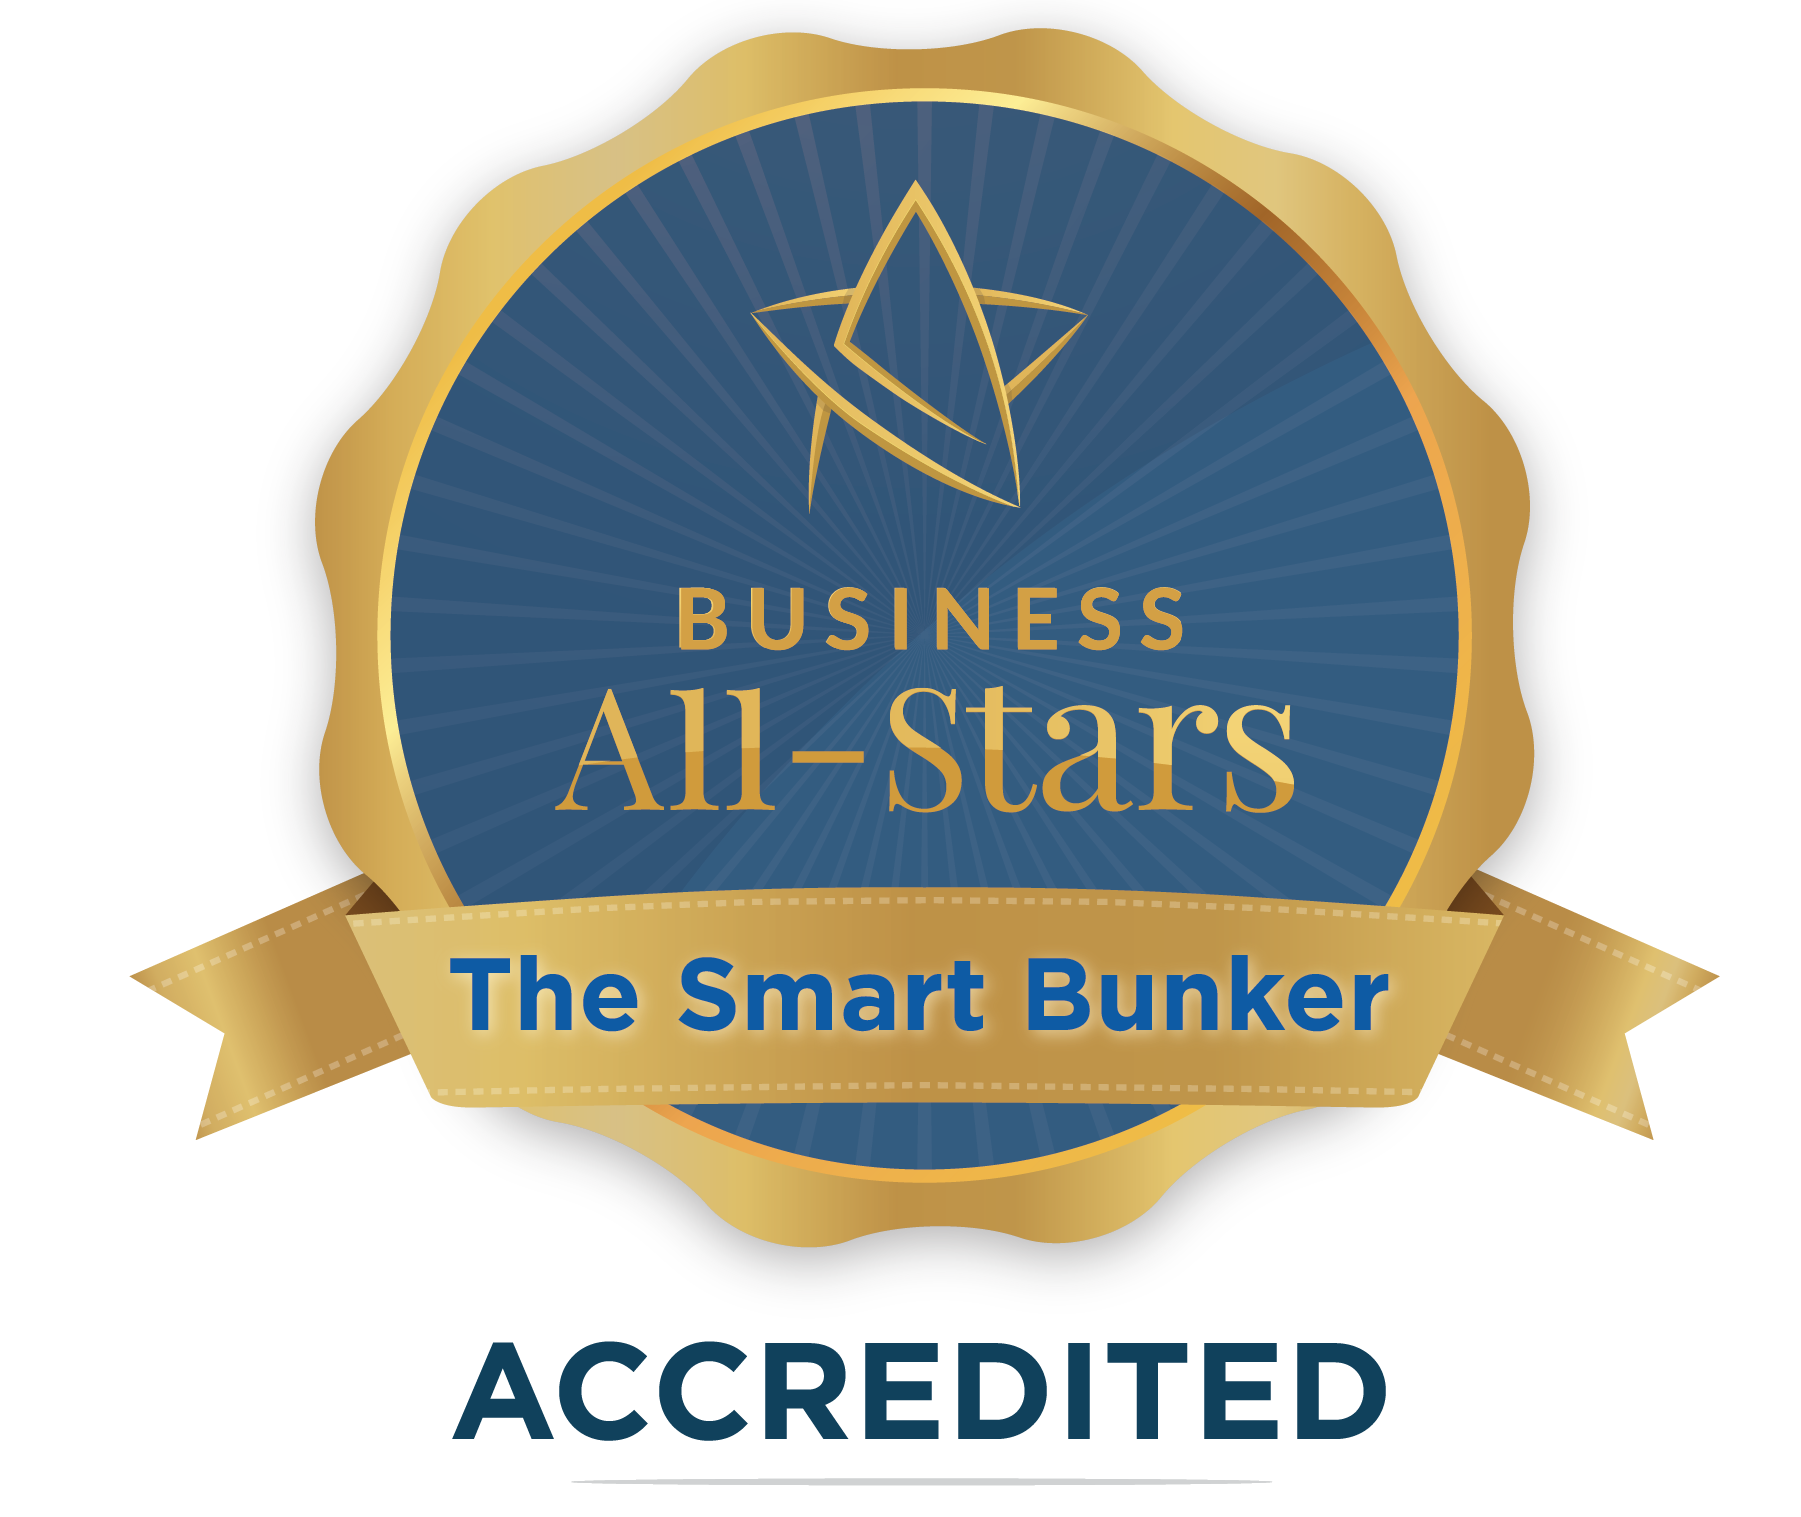 The Smart Bunker - Business All-Stars Accreditation